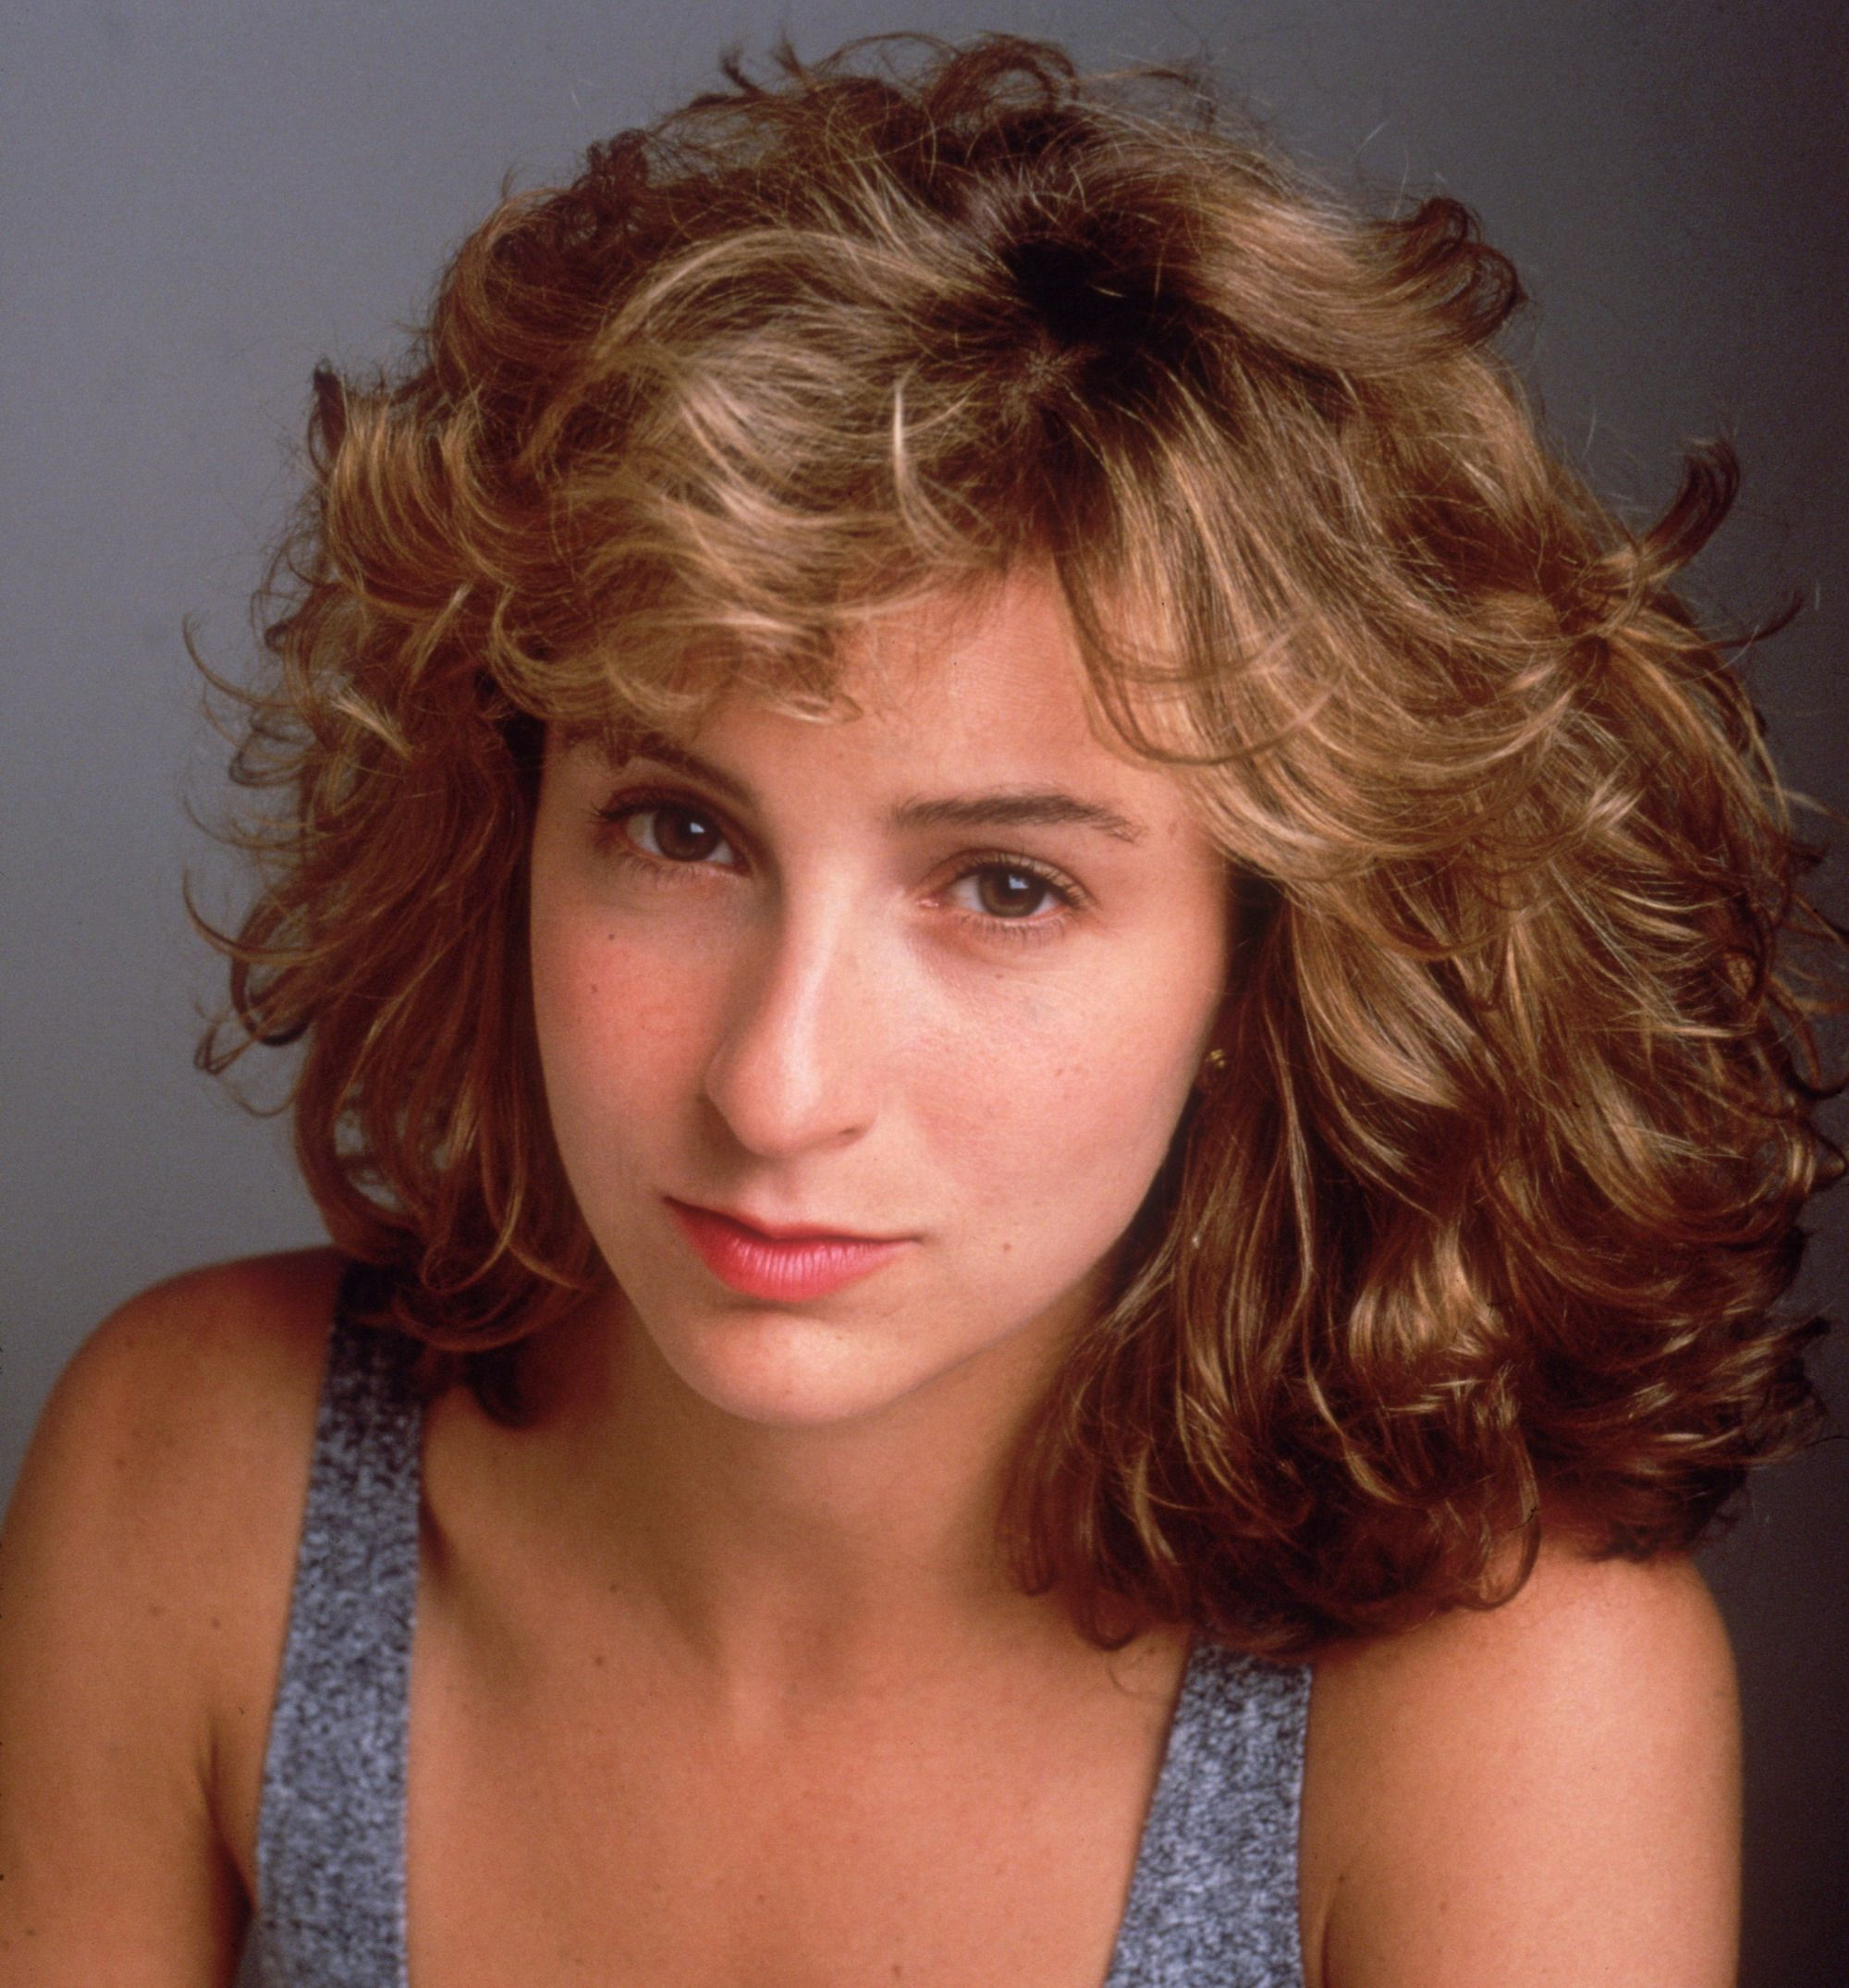 Young Jennifer Grey nudes (91 images), Feet